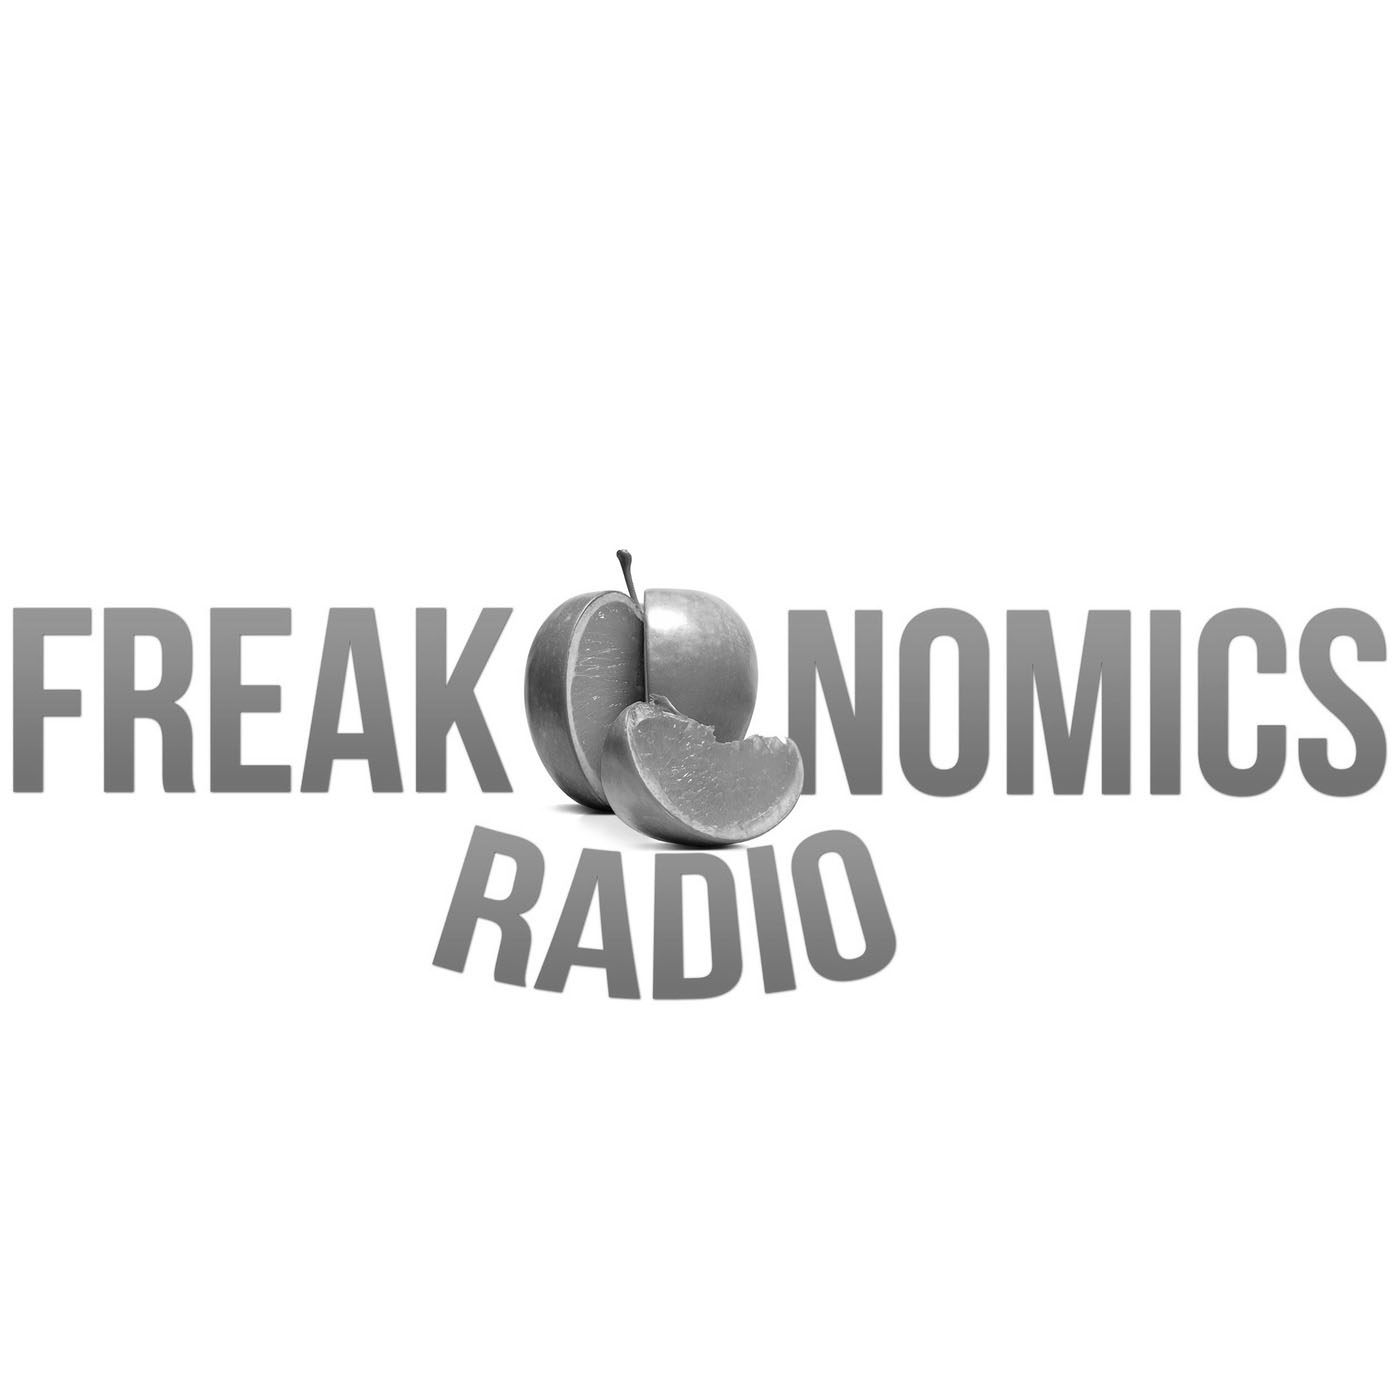 Freakonomics Radio, Stitcher - Host: Stephen DubnerProduction team: Alison Craiglow, Greg Rippin, Greg Rosalsky, Harry Huggins, and Andy Meisenheimer.Best episodes: #268-70 Bad Medicine parts 1, 2 & 3#277 No Hollywood Ending for the Visual-Effects Industry#242: Is The World Ready for a Guaranteed Basic Income?****